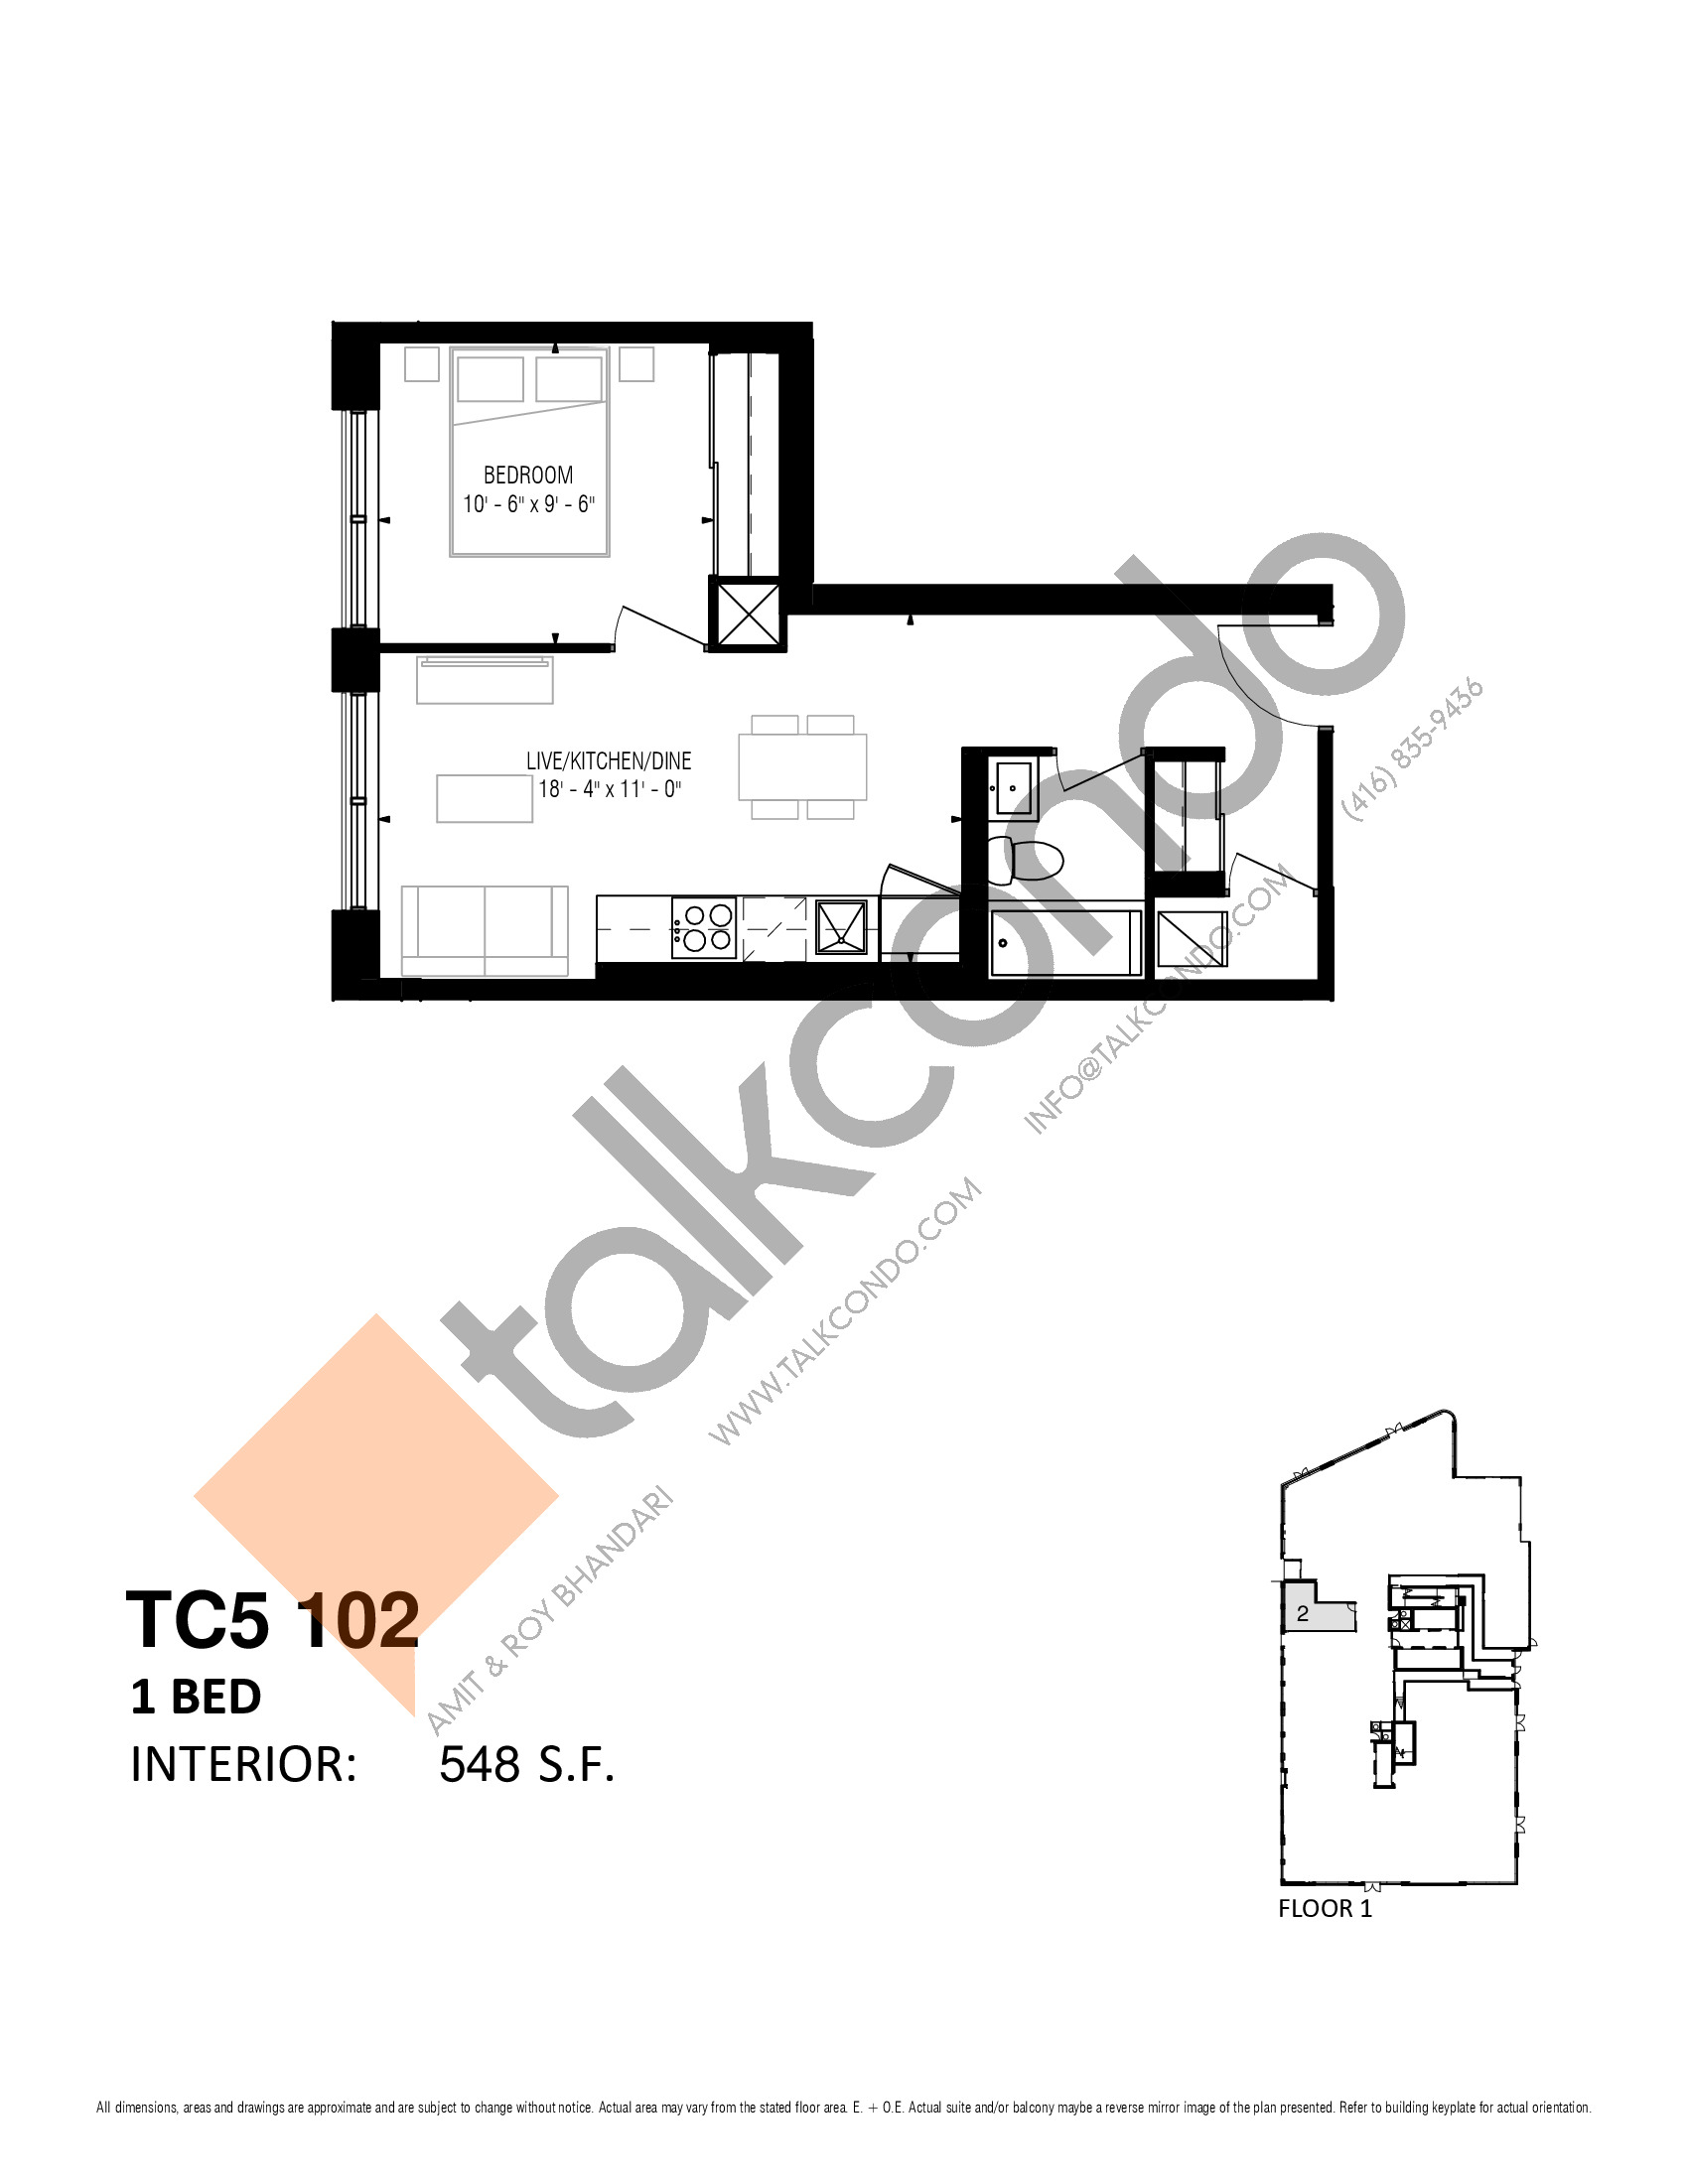 TC5 102 Floor Plan at Transit City 5 (TC5) Condos - 548 sq.ft